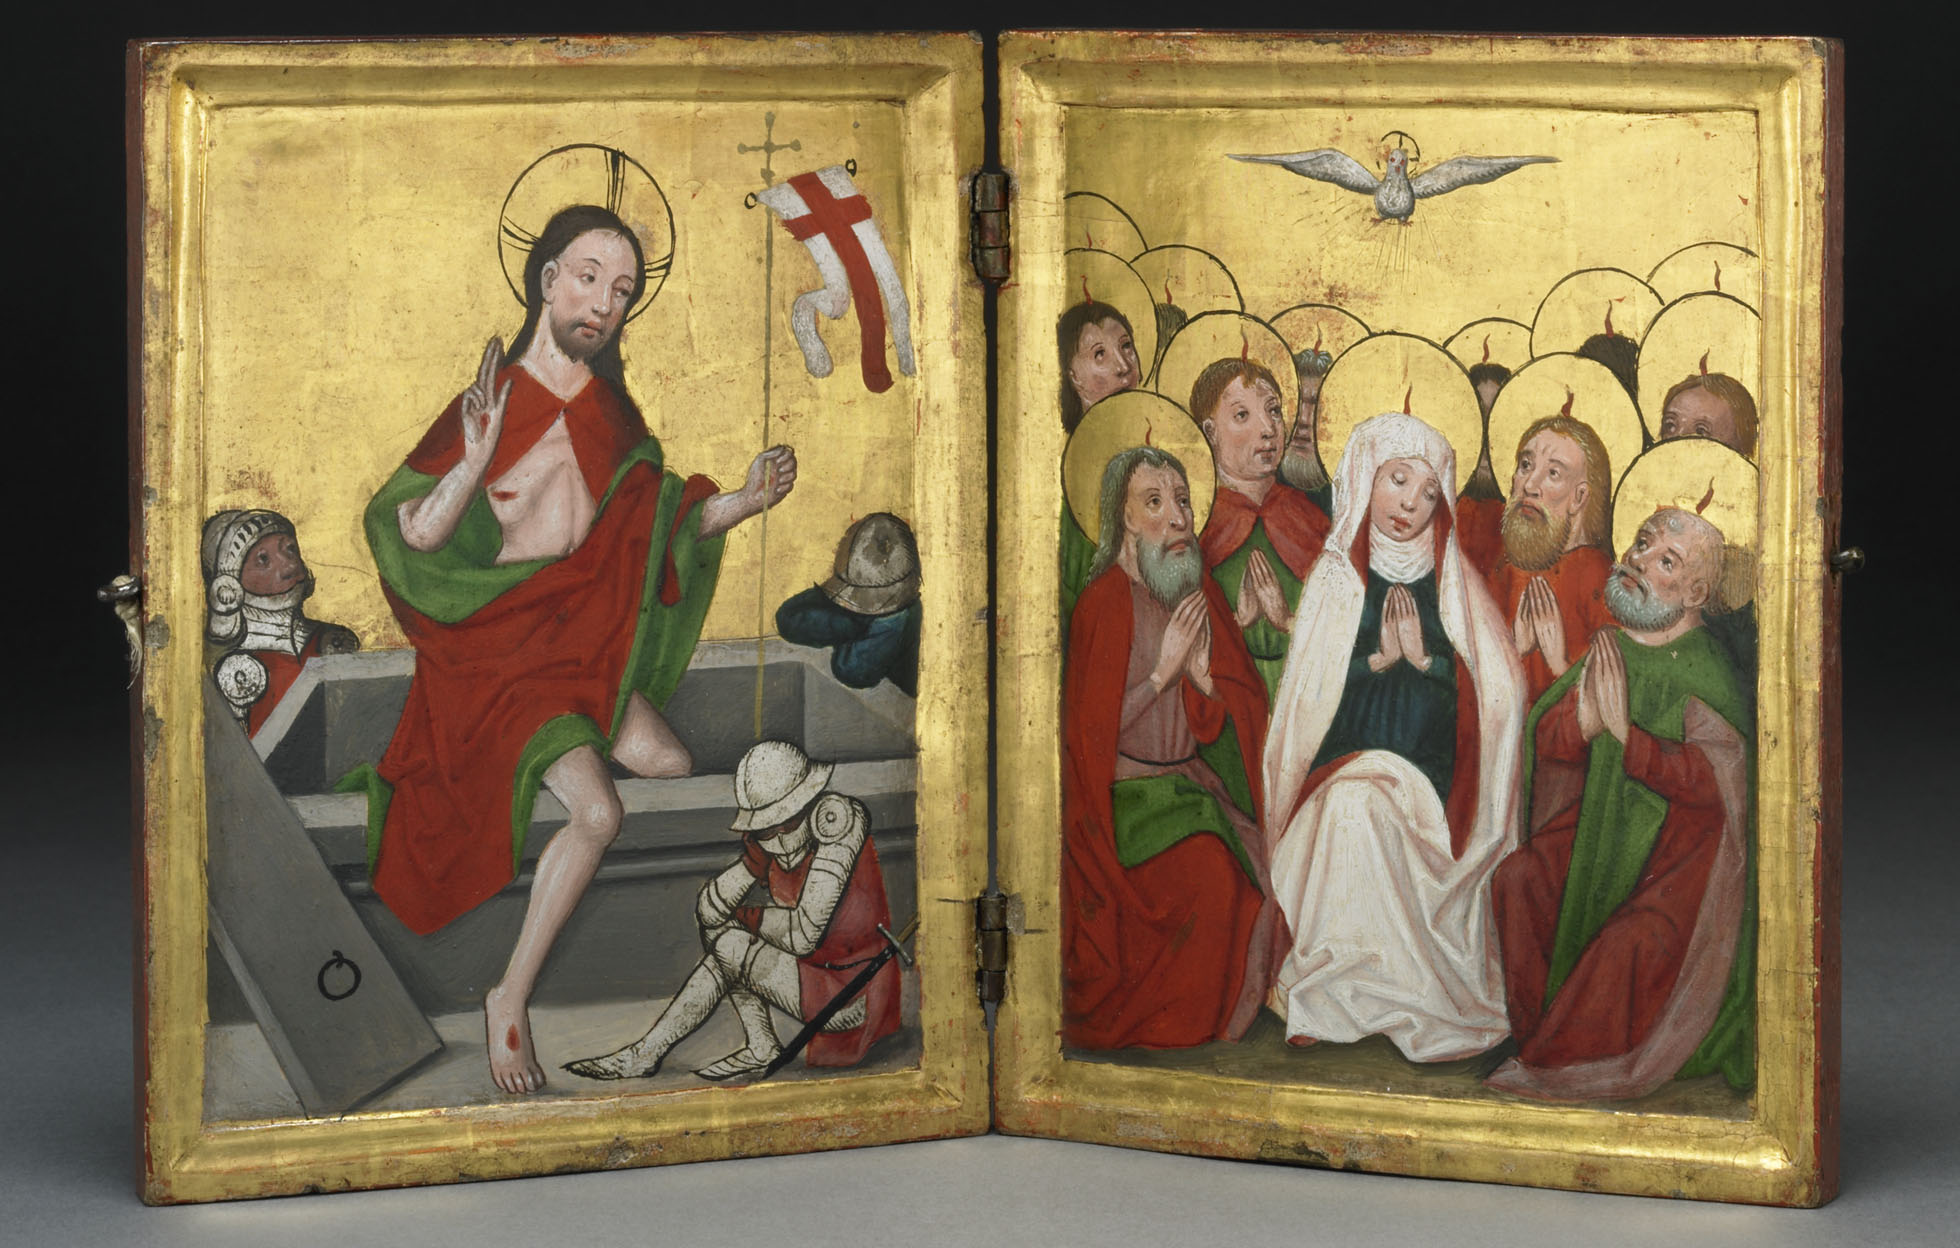 f9e27b709541 These miniature painted panels show Christ rising from the grave and his  mother and followers receiving the spirit of God